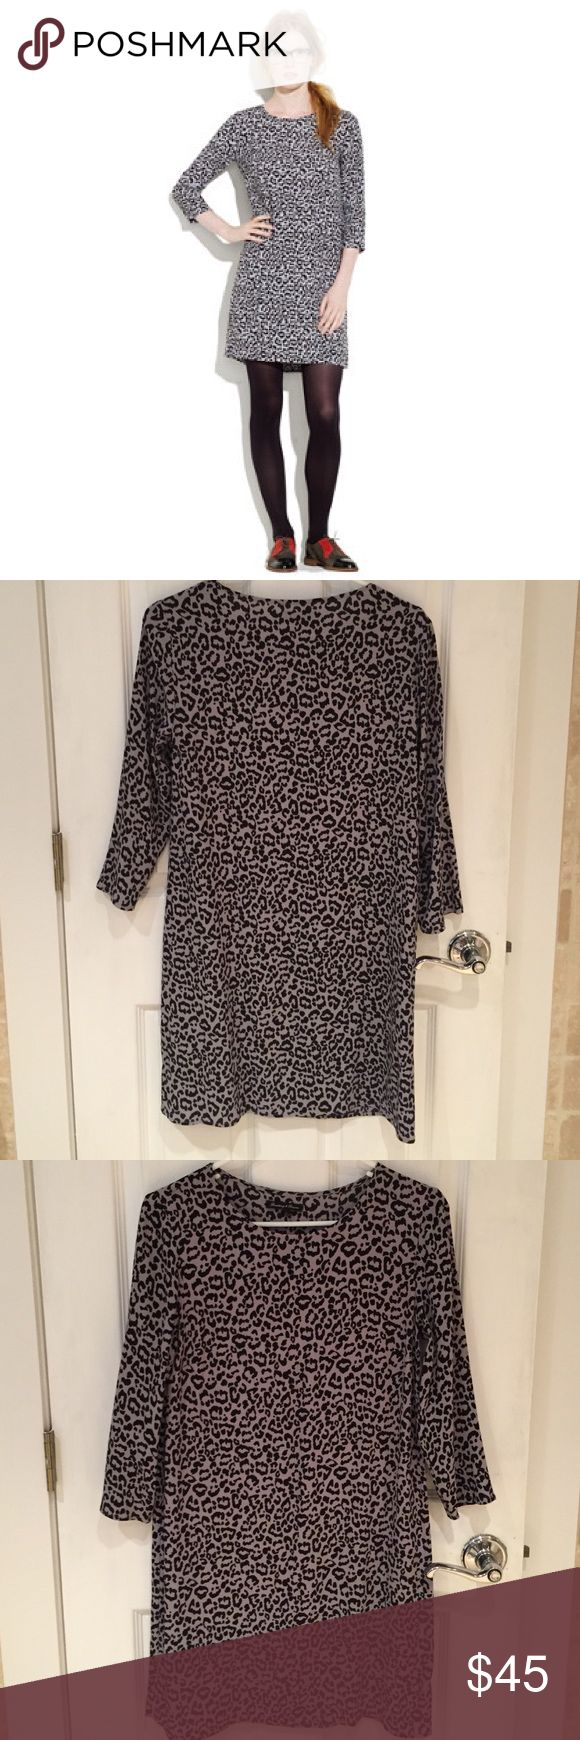 Madewell leopard print shift dress, can Go to party dress or can be dressed down with casual booties/ flats. Excellent condition, no flaws to note. Worn only two times. The true color of the dress looks like the first and last pic. My bathroom light altered the true color slightly. Madewell Dresses